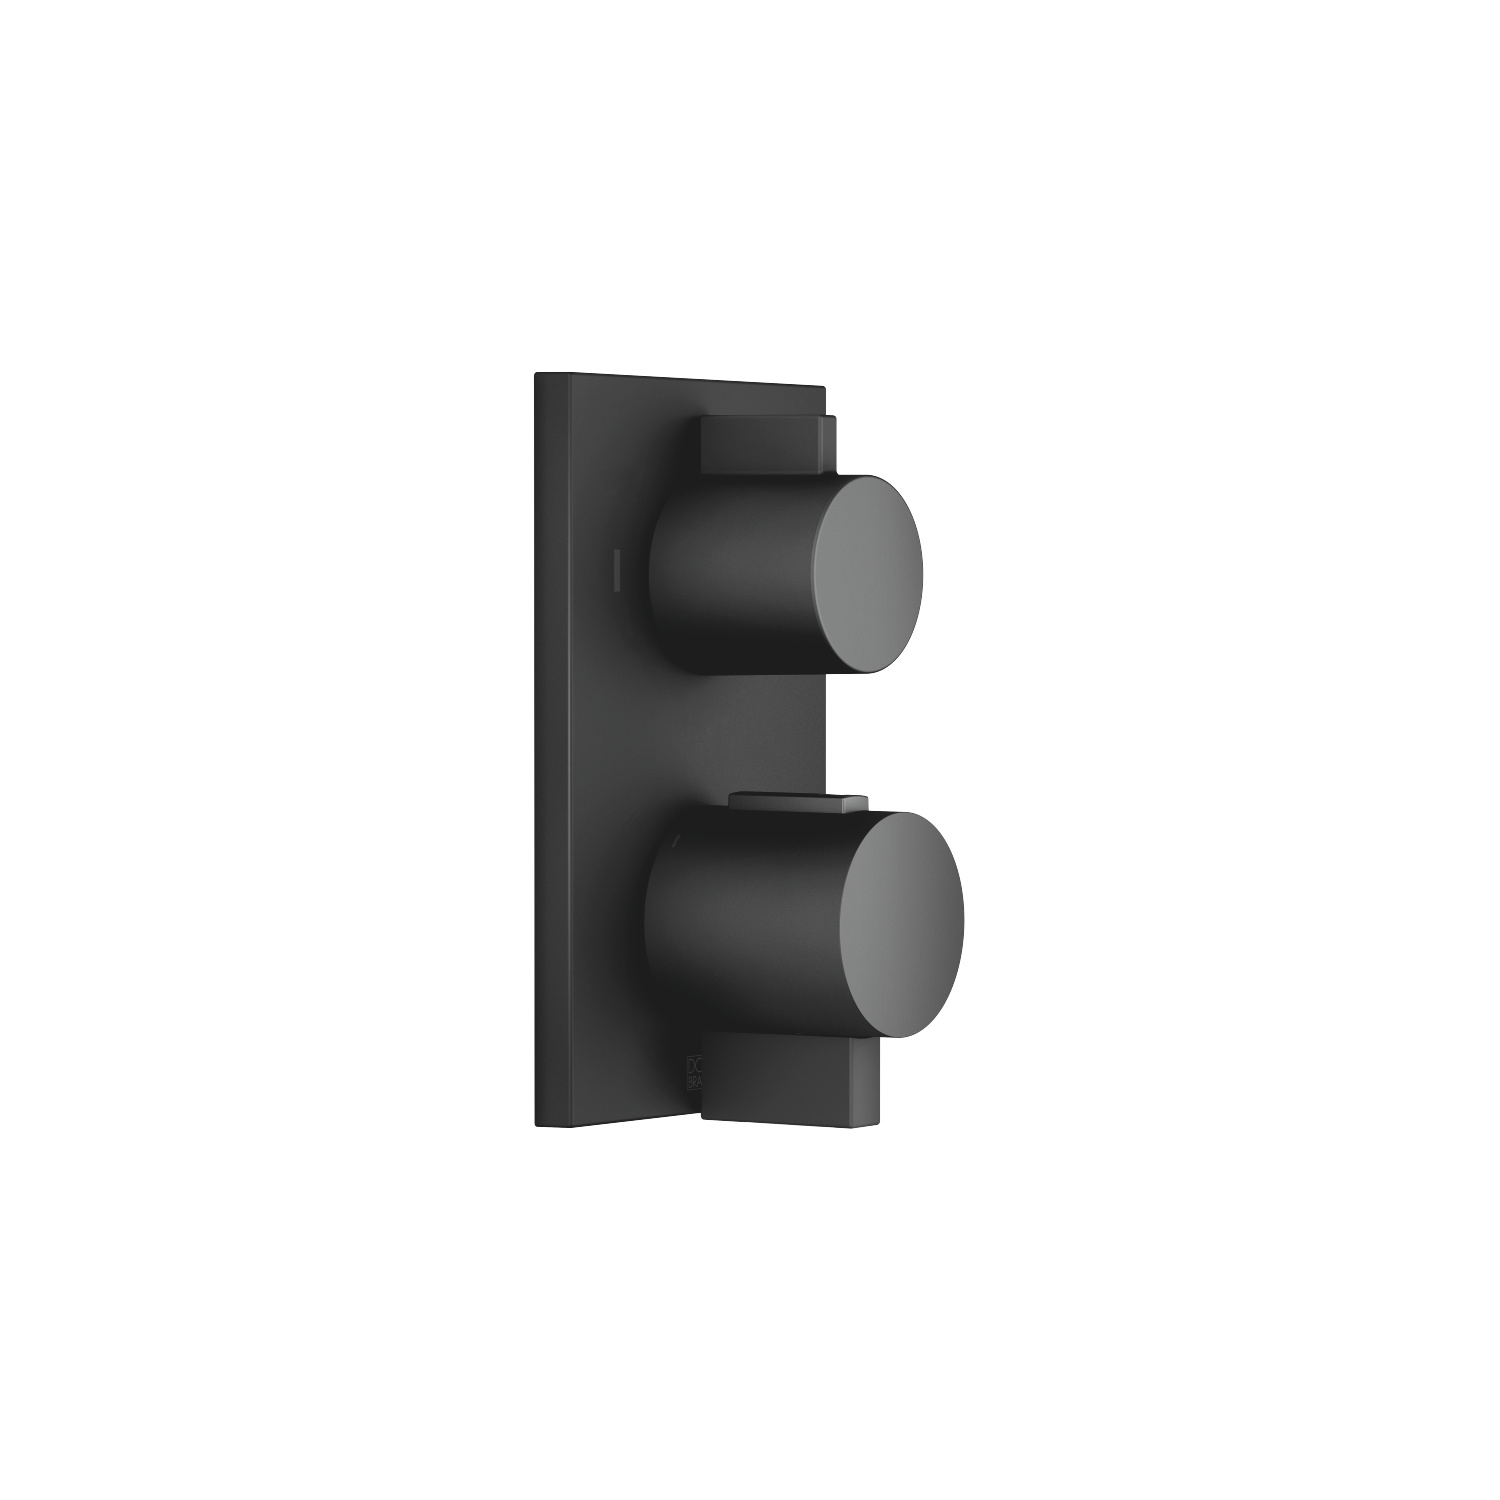 Concealed thermostat with two function volume control - matt black